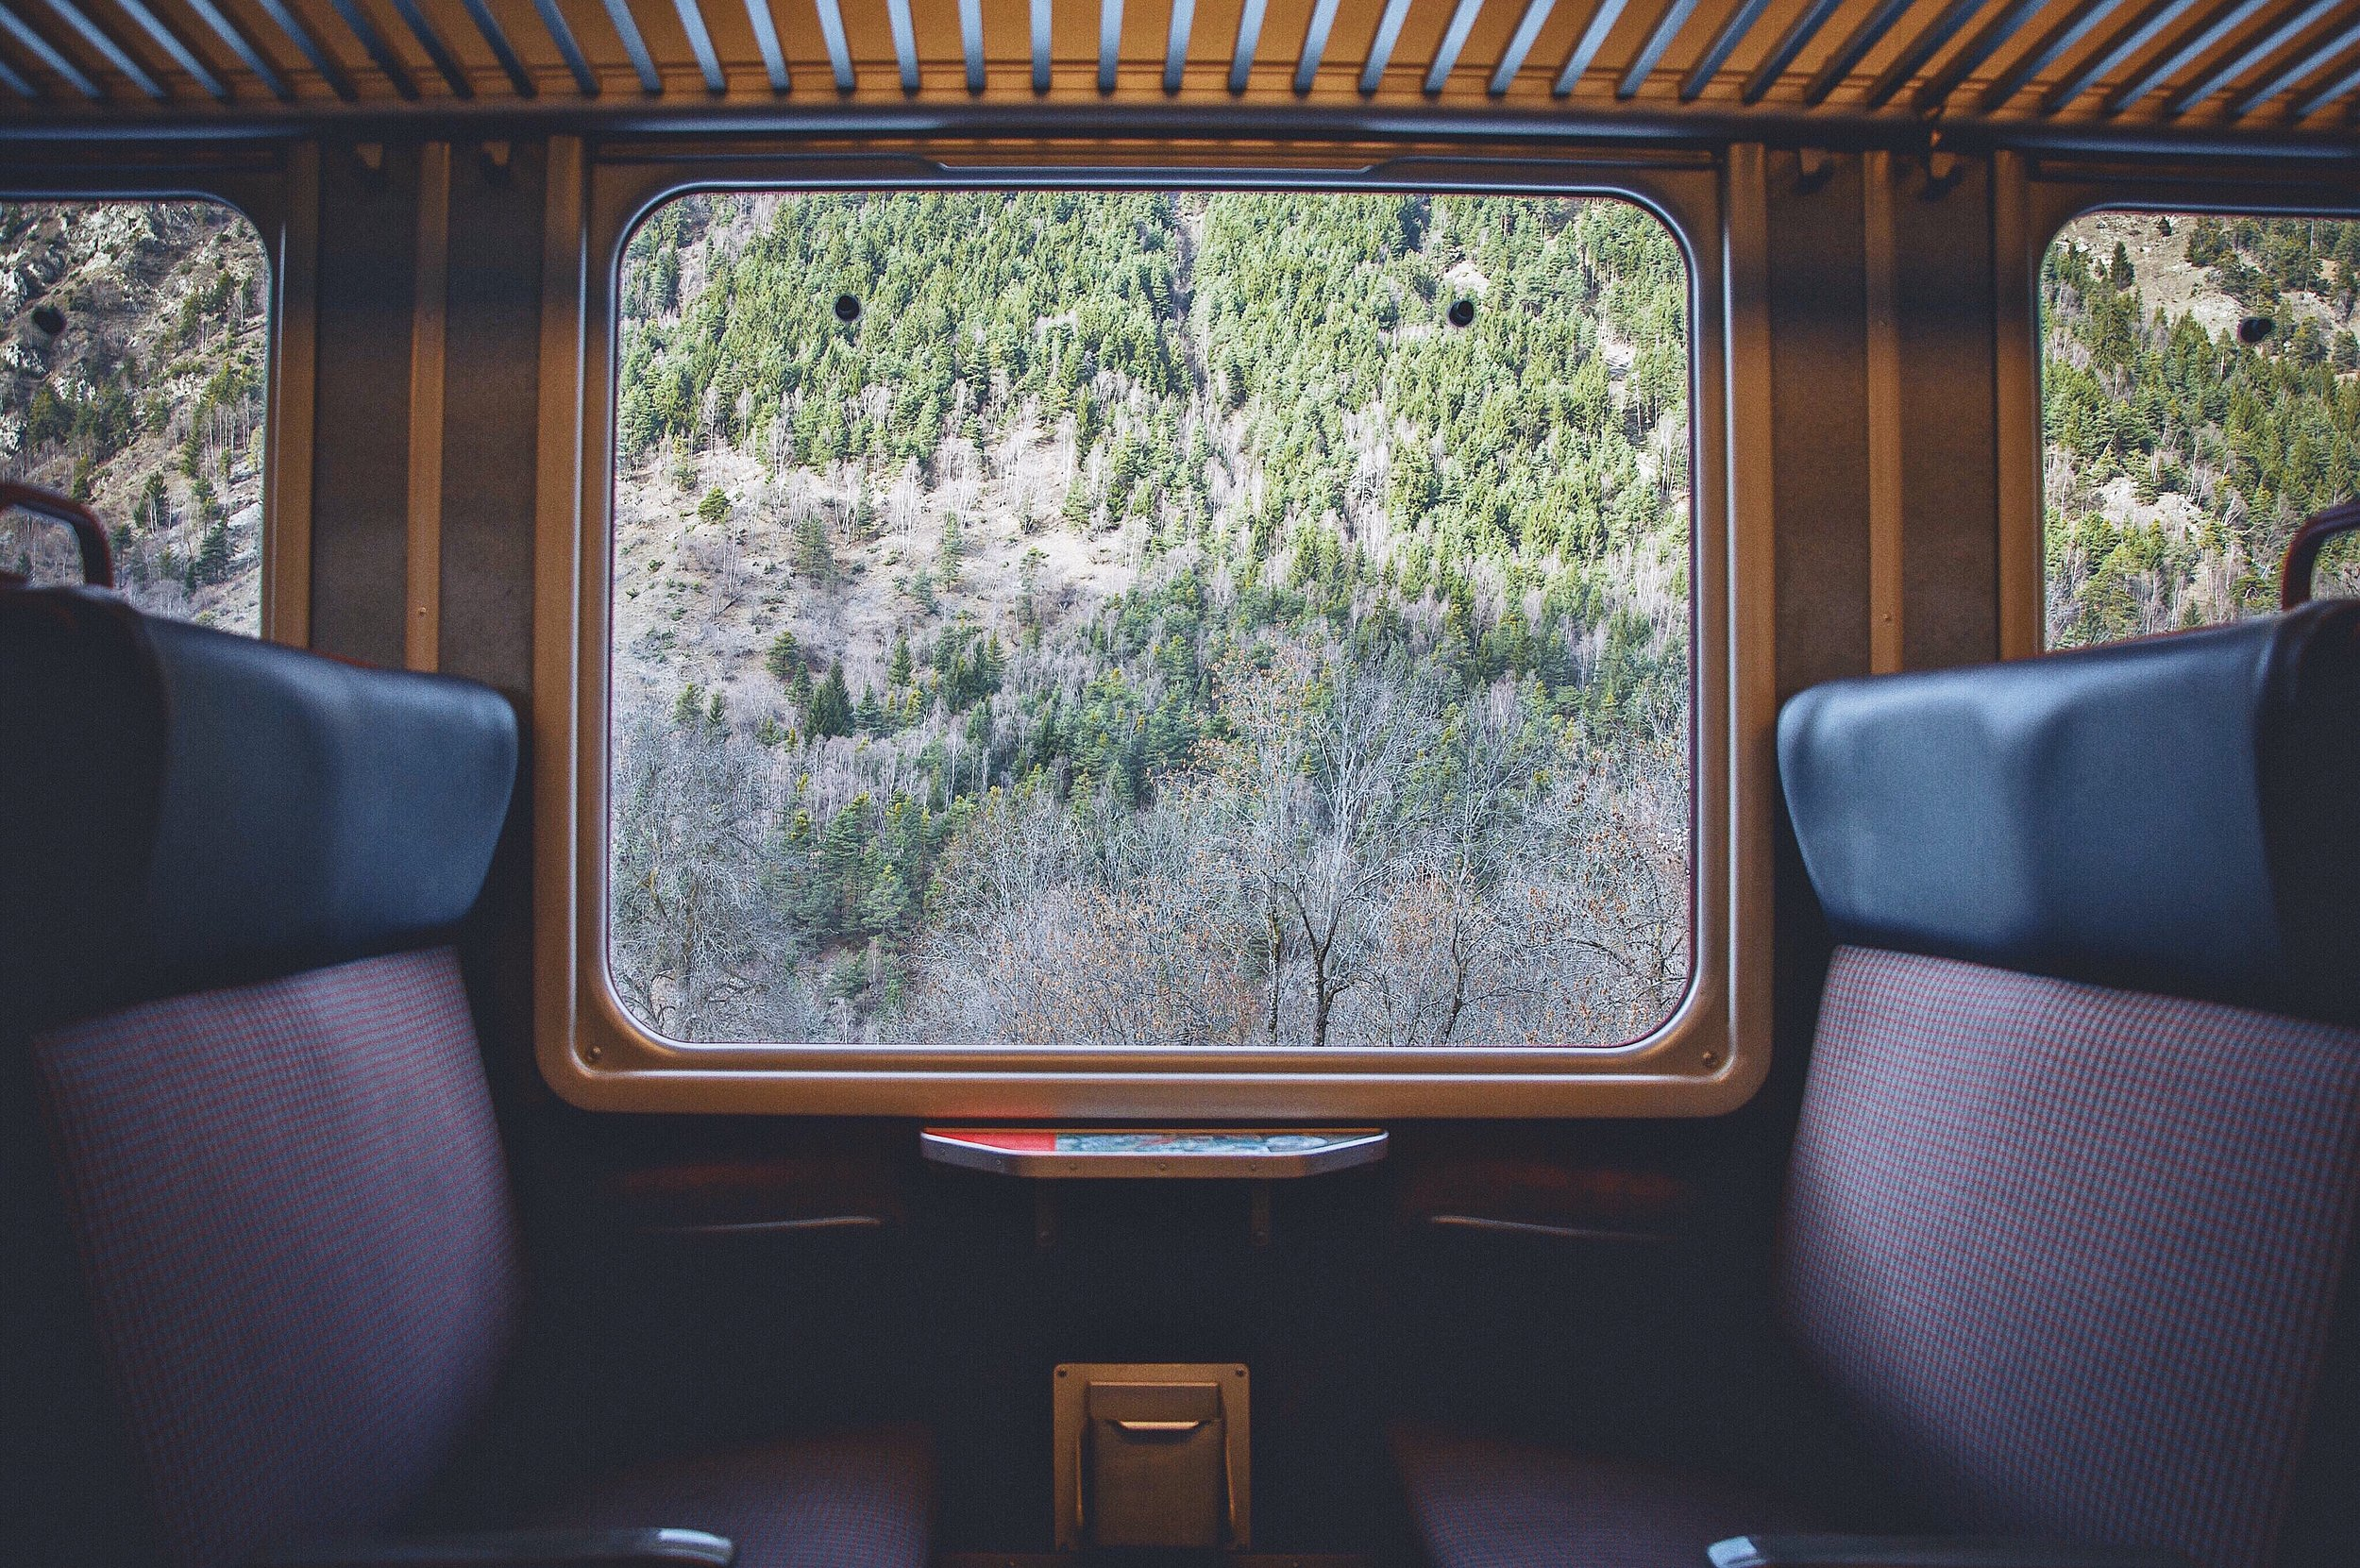 Train journeys - Examples of train journeys from London or Paris to Provence